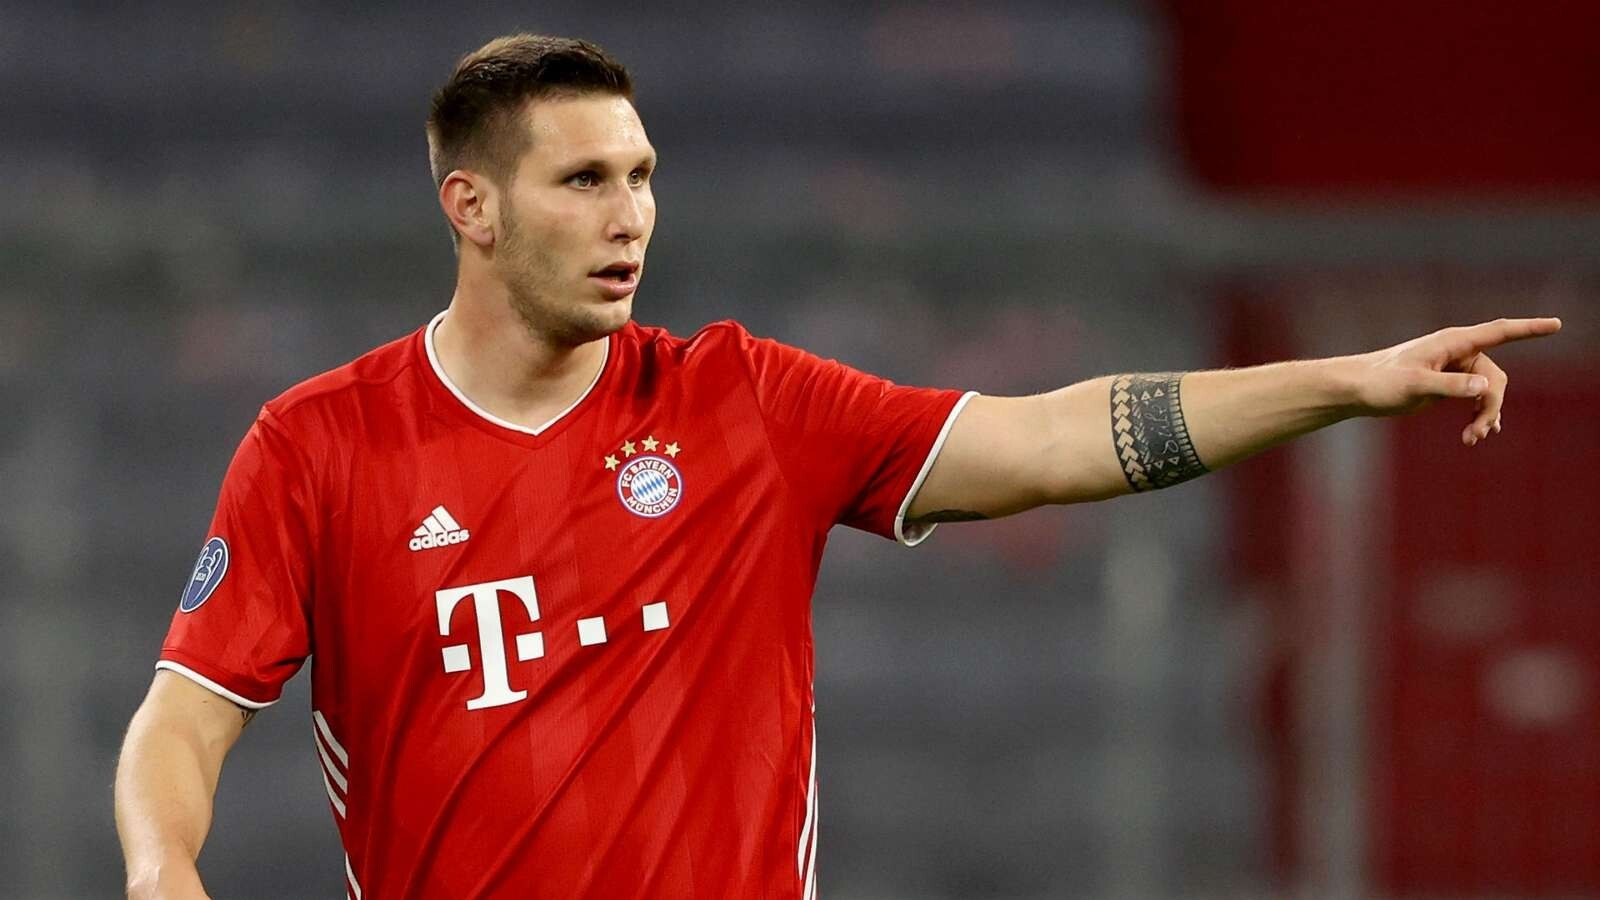 Bayern v/s PSG | Sule rated doubtful for PSG clash